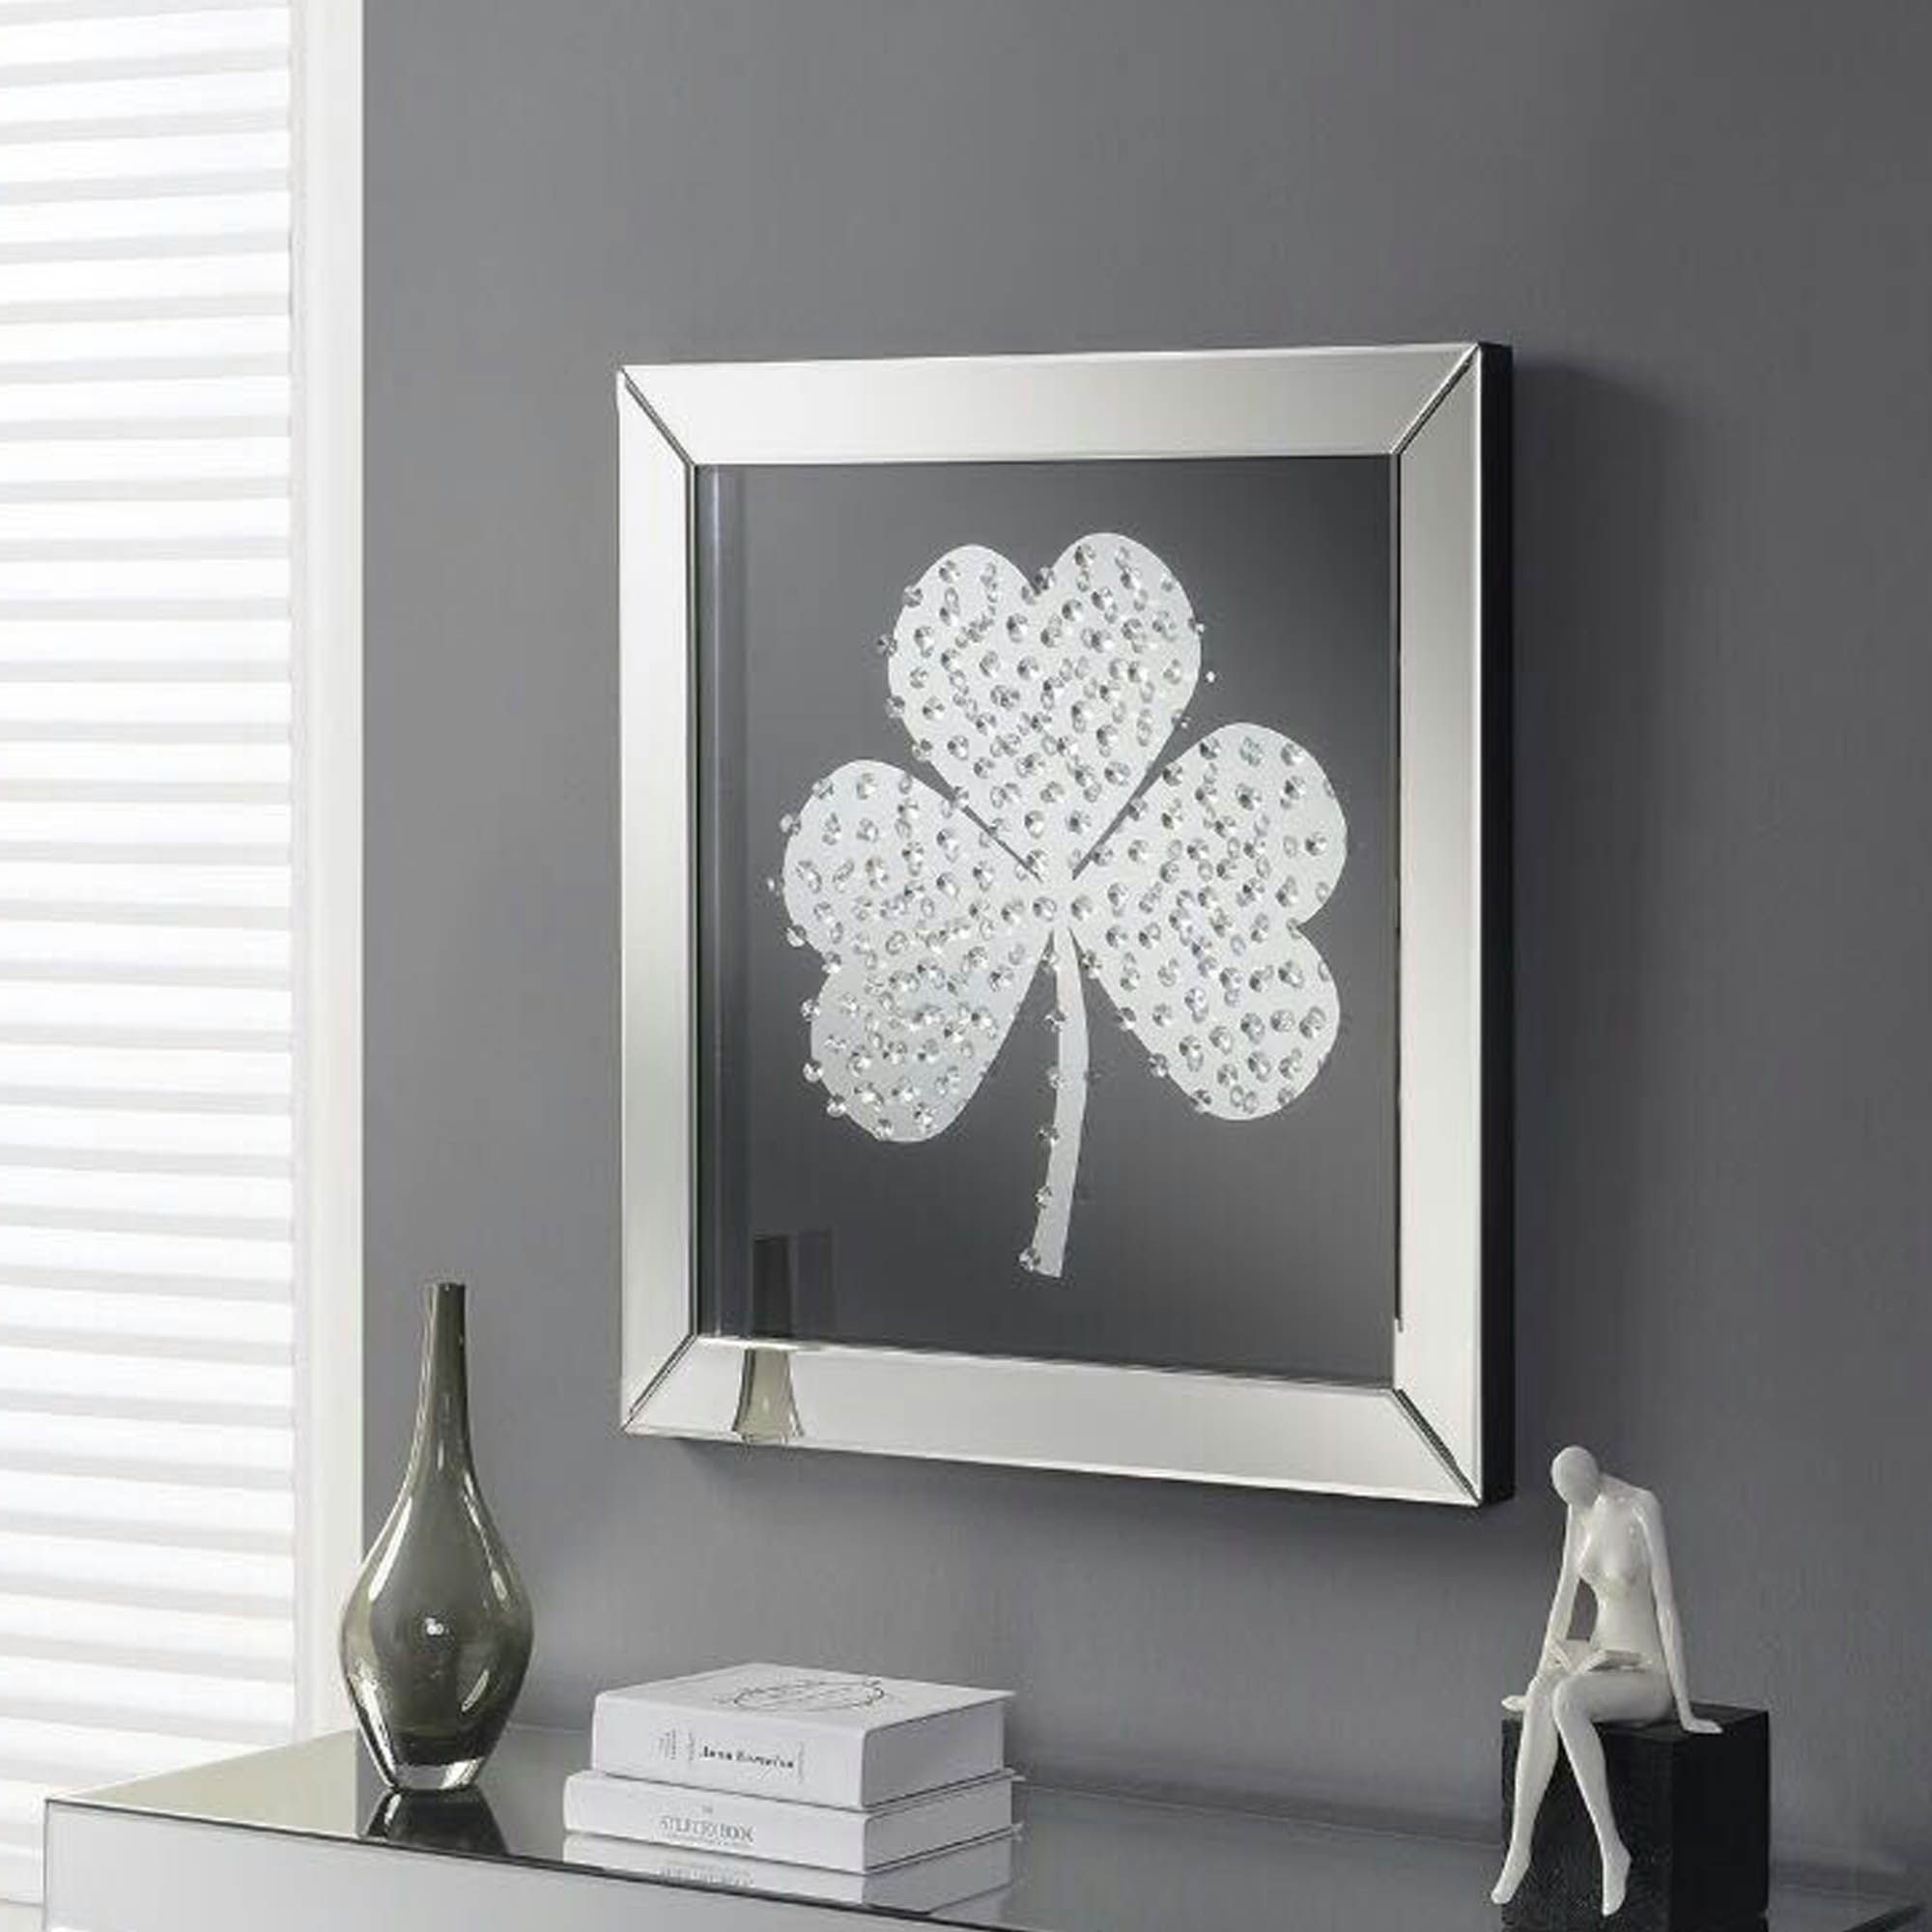 shamrock mirrored wall art wall art homesdirect365. Black Bedroom Furniture Sets. Home Design Ideas